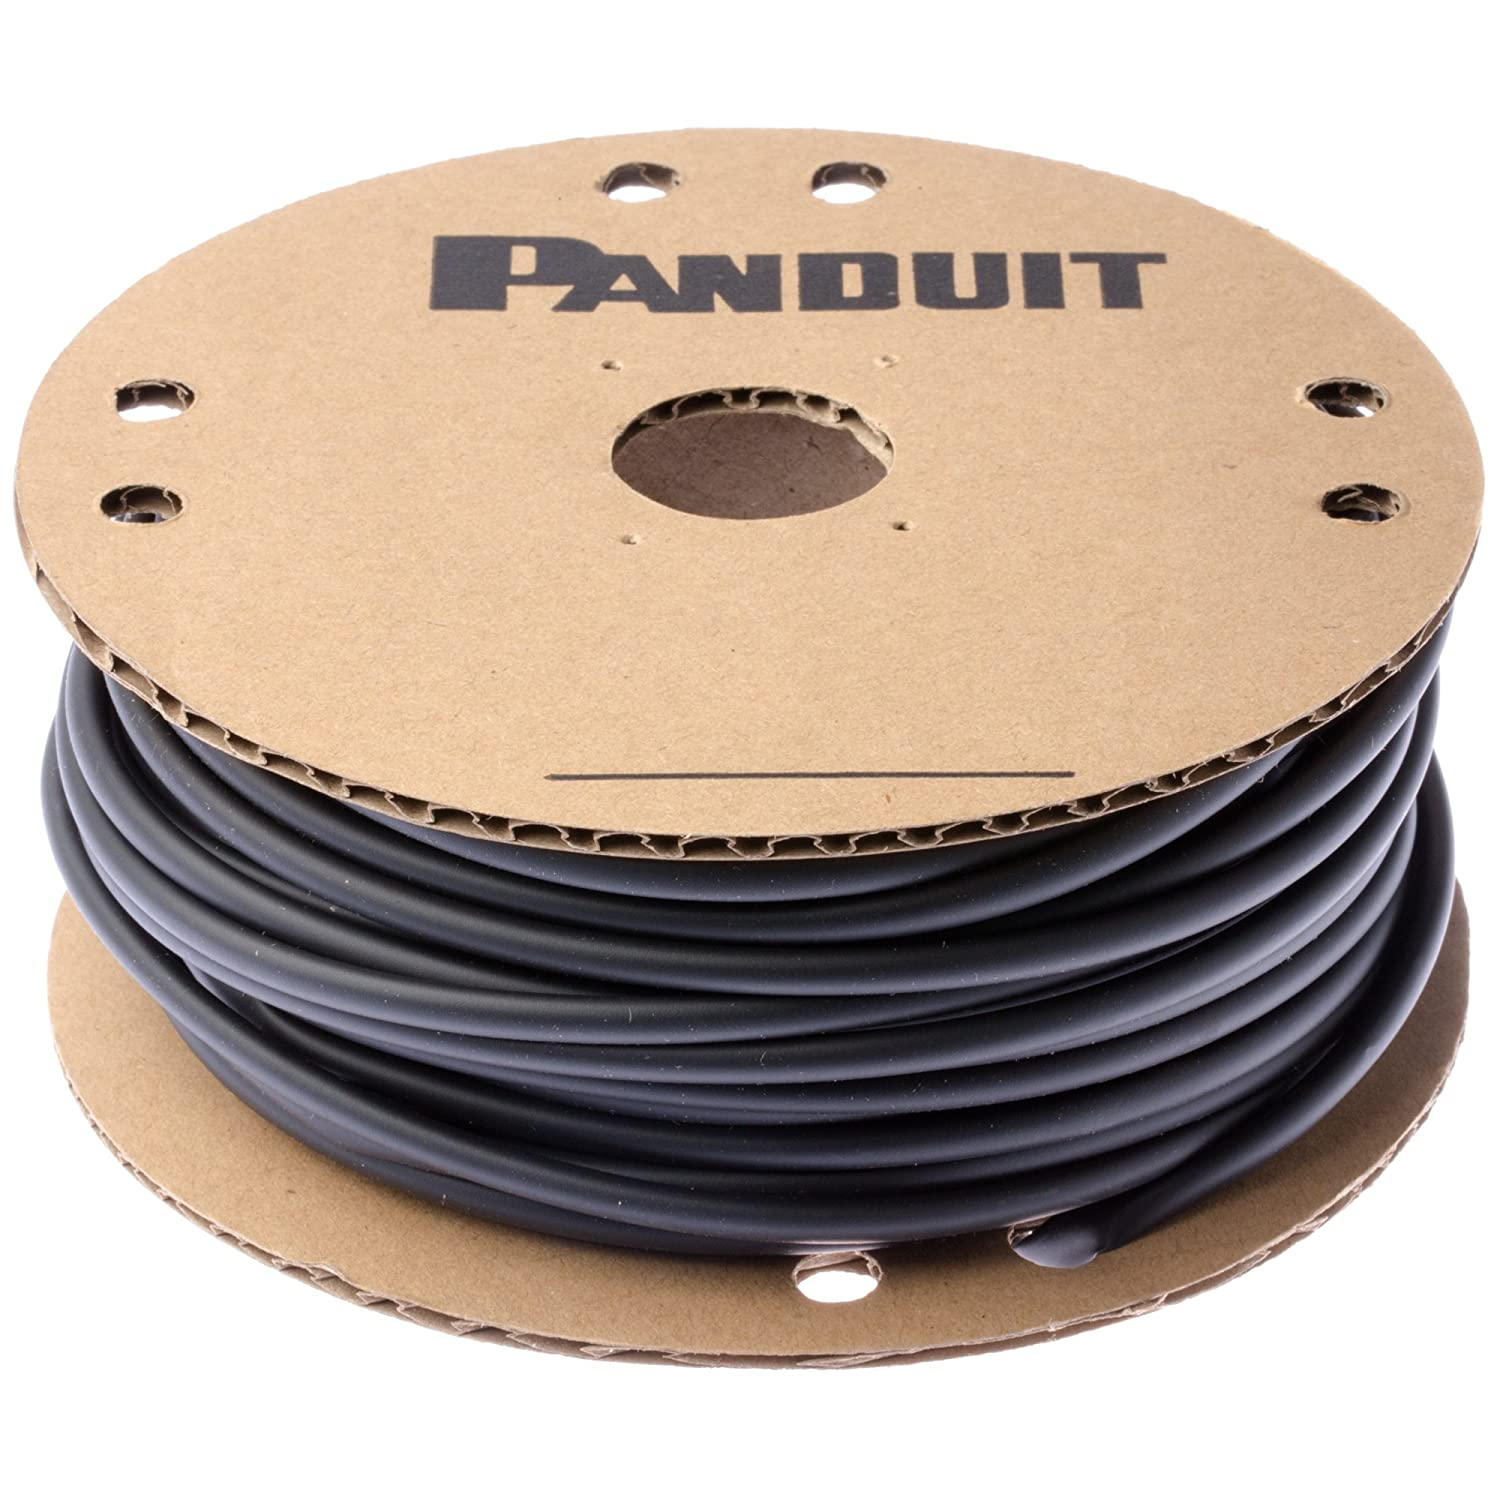 Amazon.com: Panduit HSTT05-C Thin Wall Polyolefin Heat Shrink, 0.05-Inch, Black: Industrial & Scientific